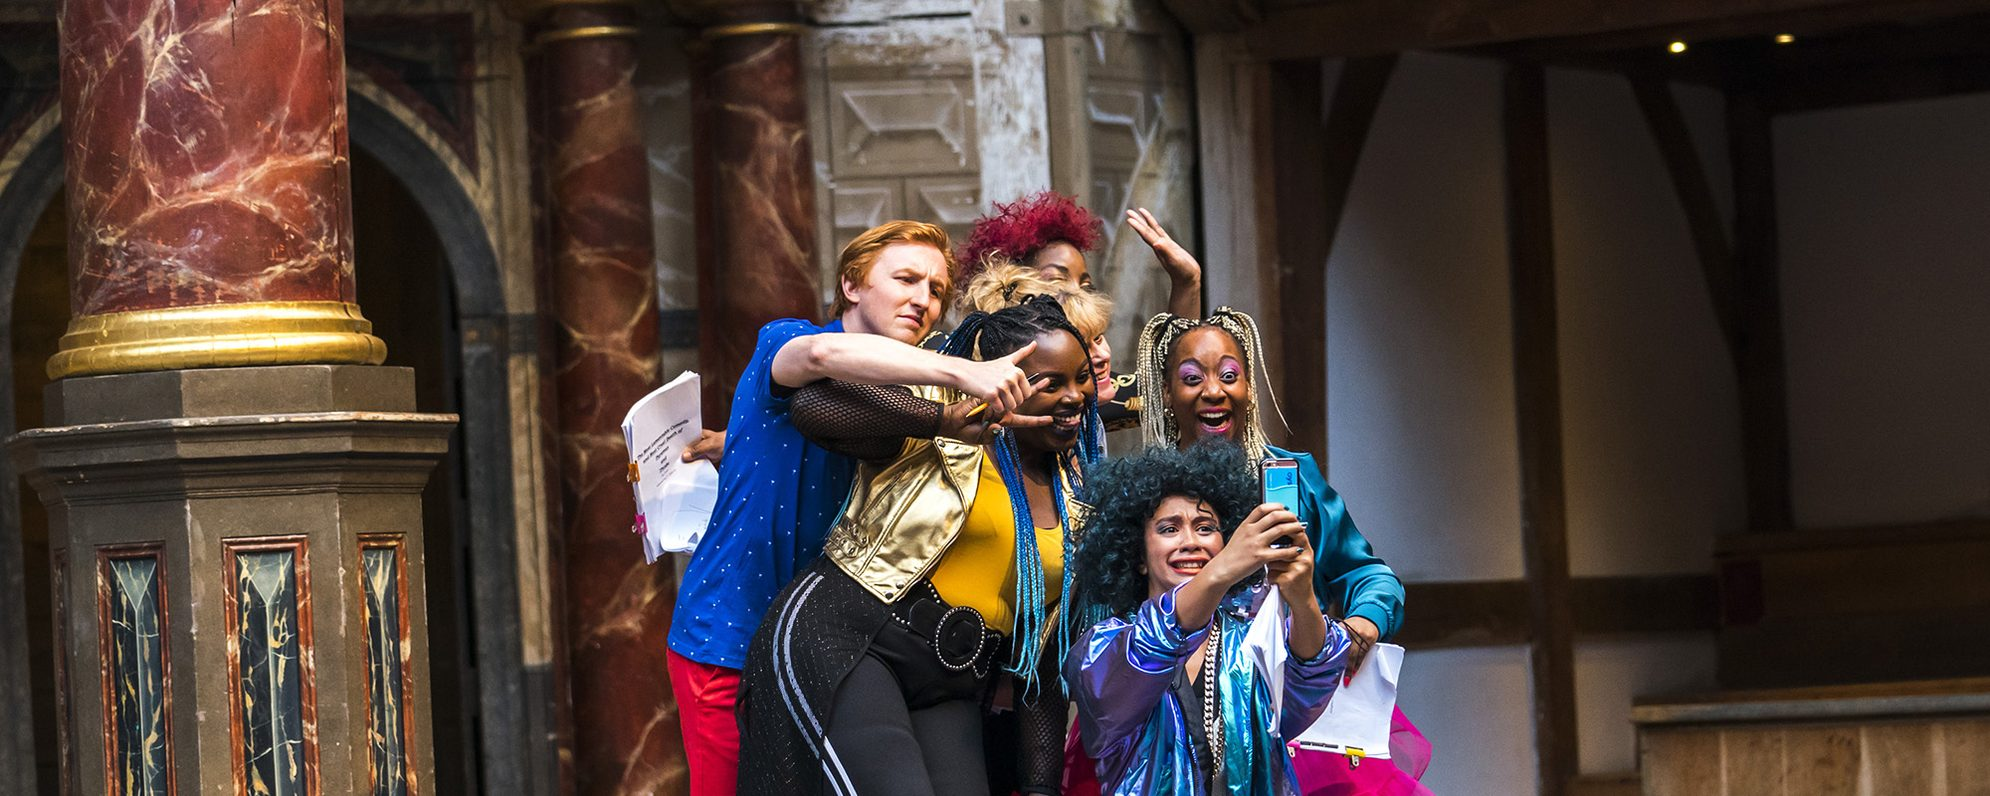 Photo from A Midsummer Night's Dream in the Globe Theatre, 2019.